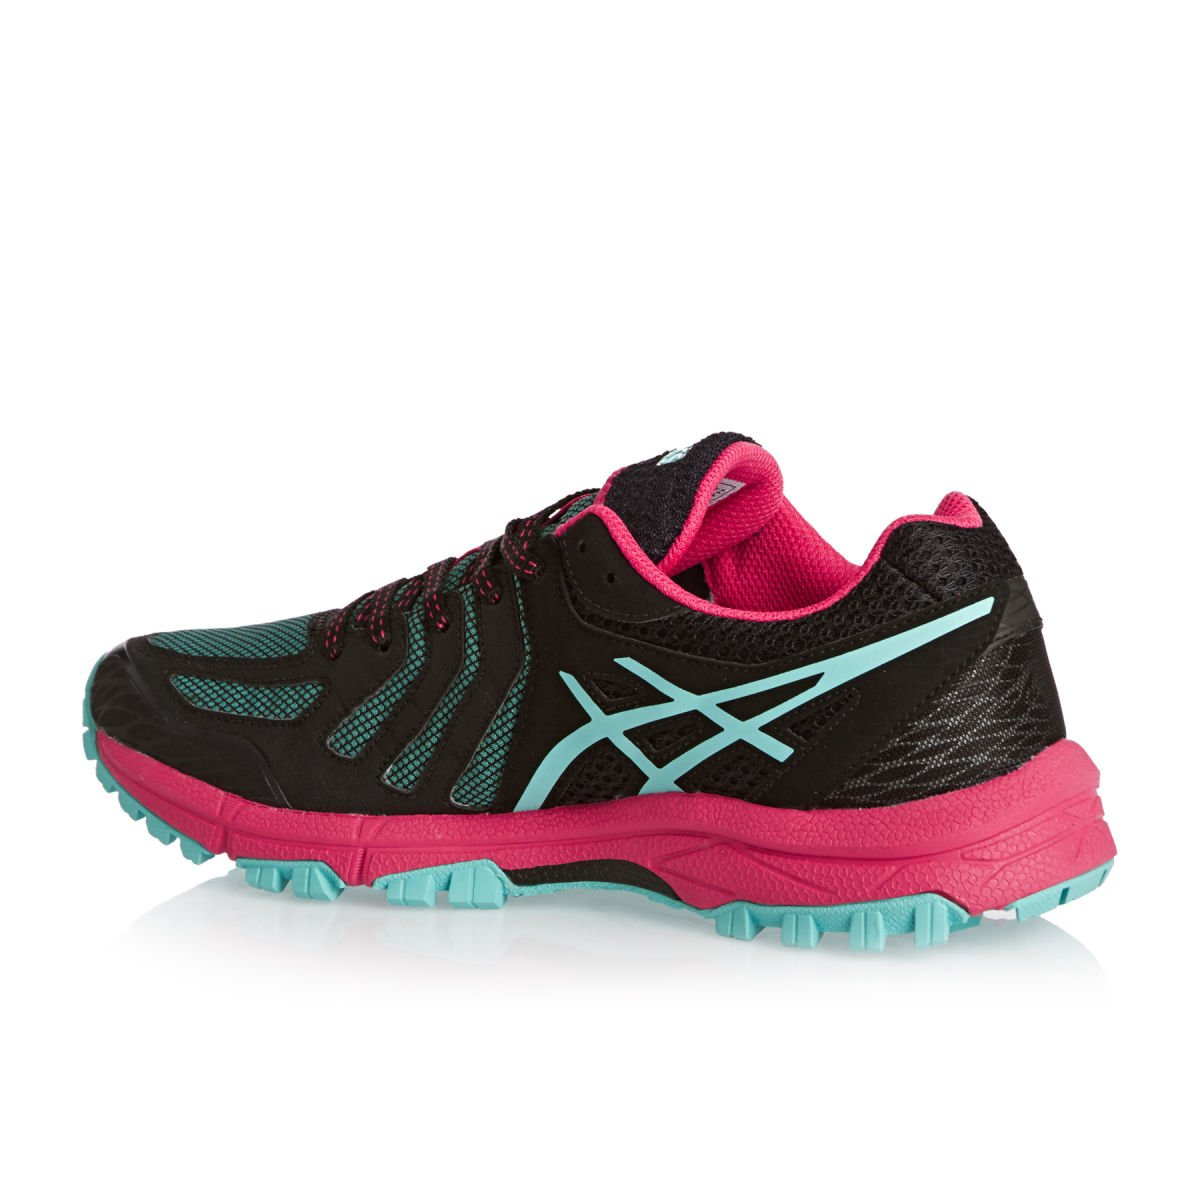 Amazon.com | ASICS Gel-Fuji Attack 5 Womens Running Shoes - SS16-5 - Black | Road Running